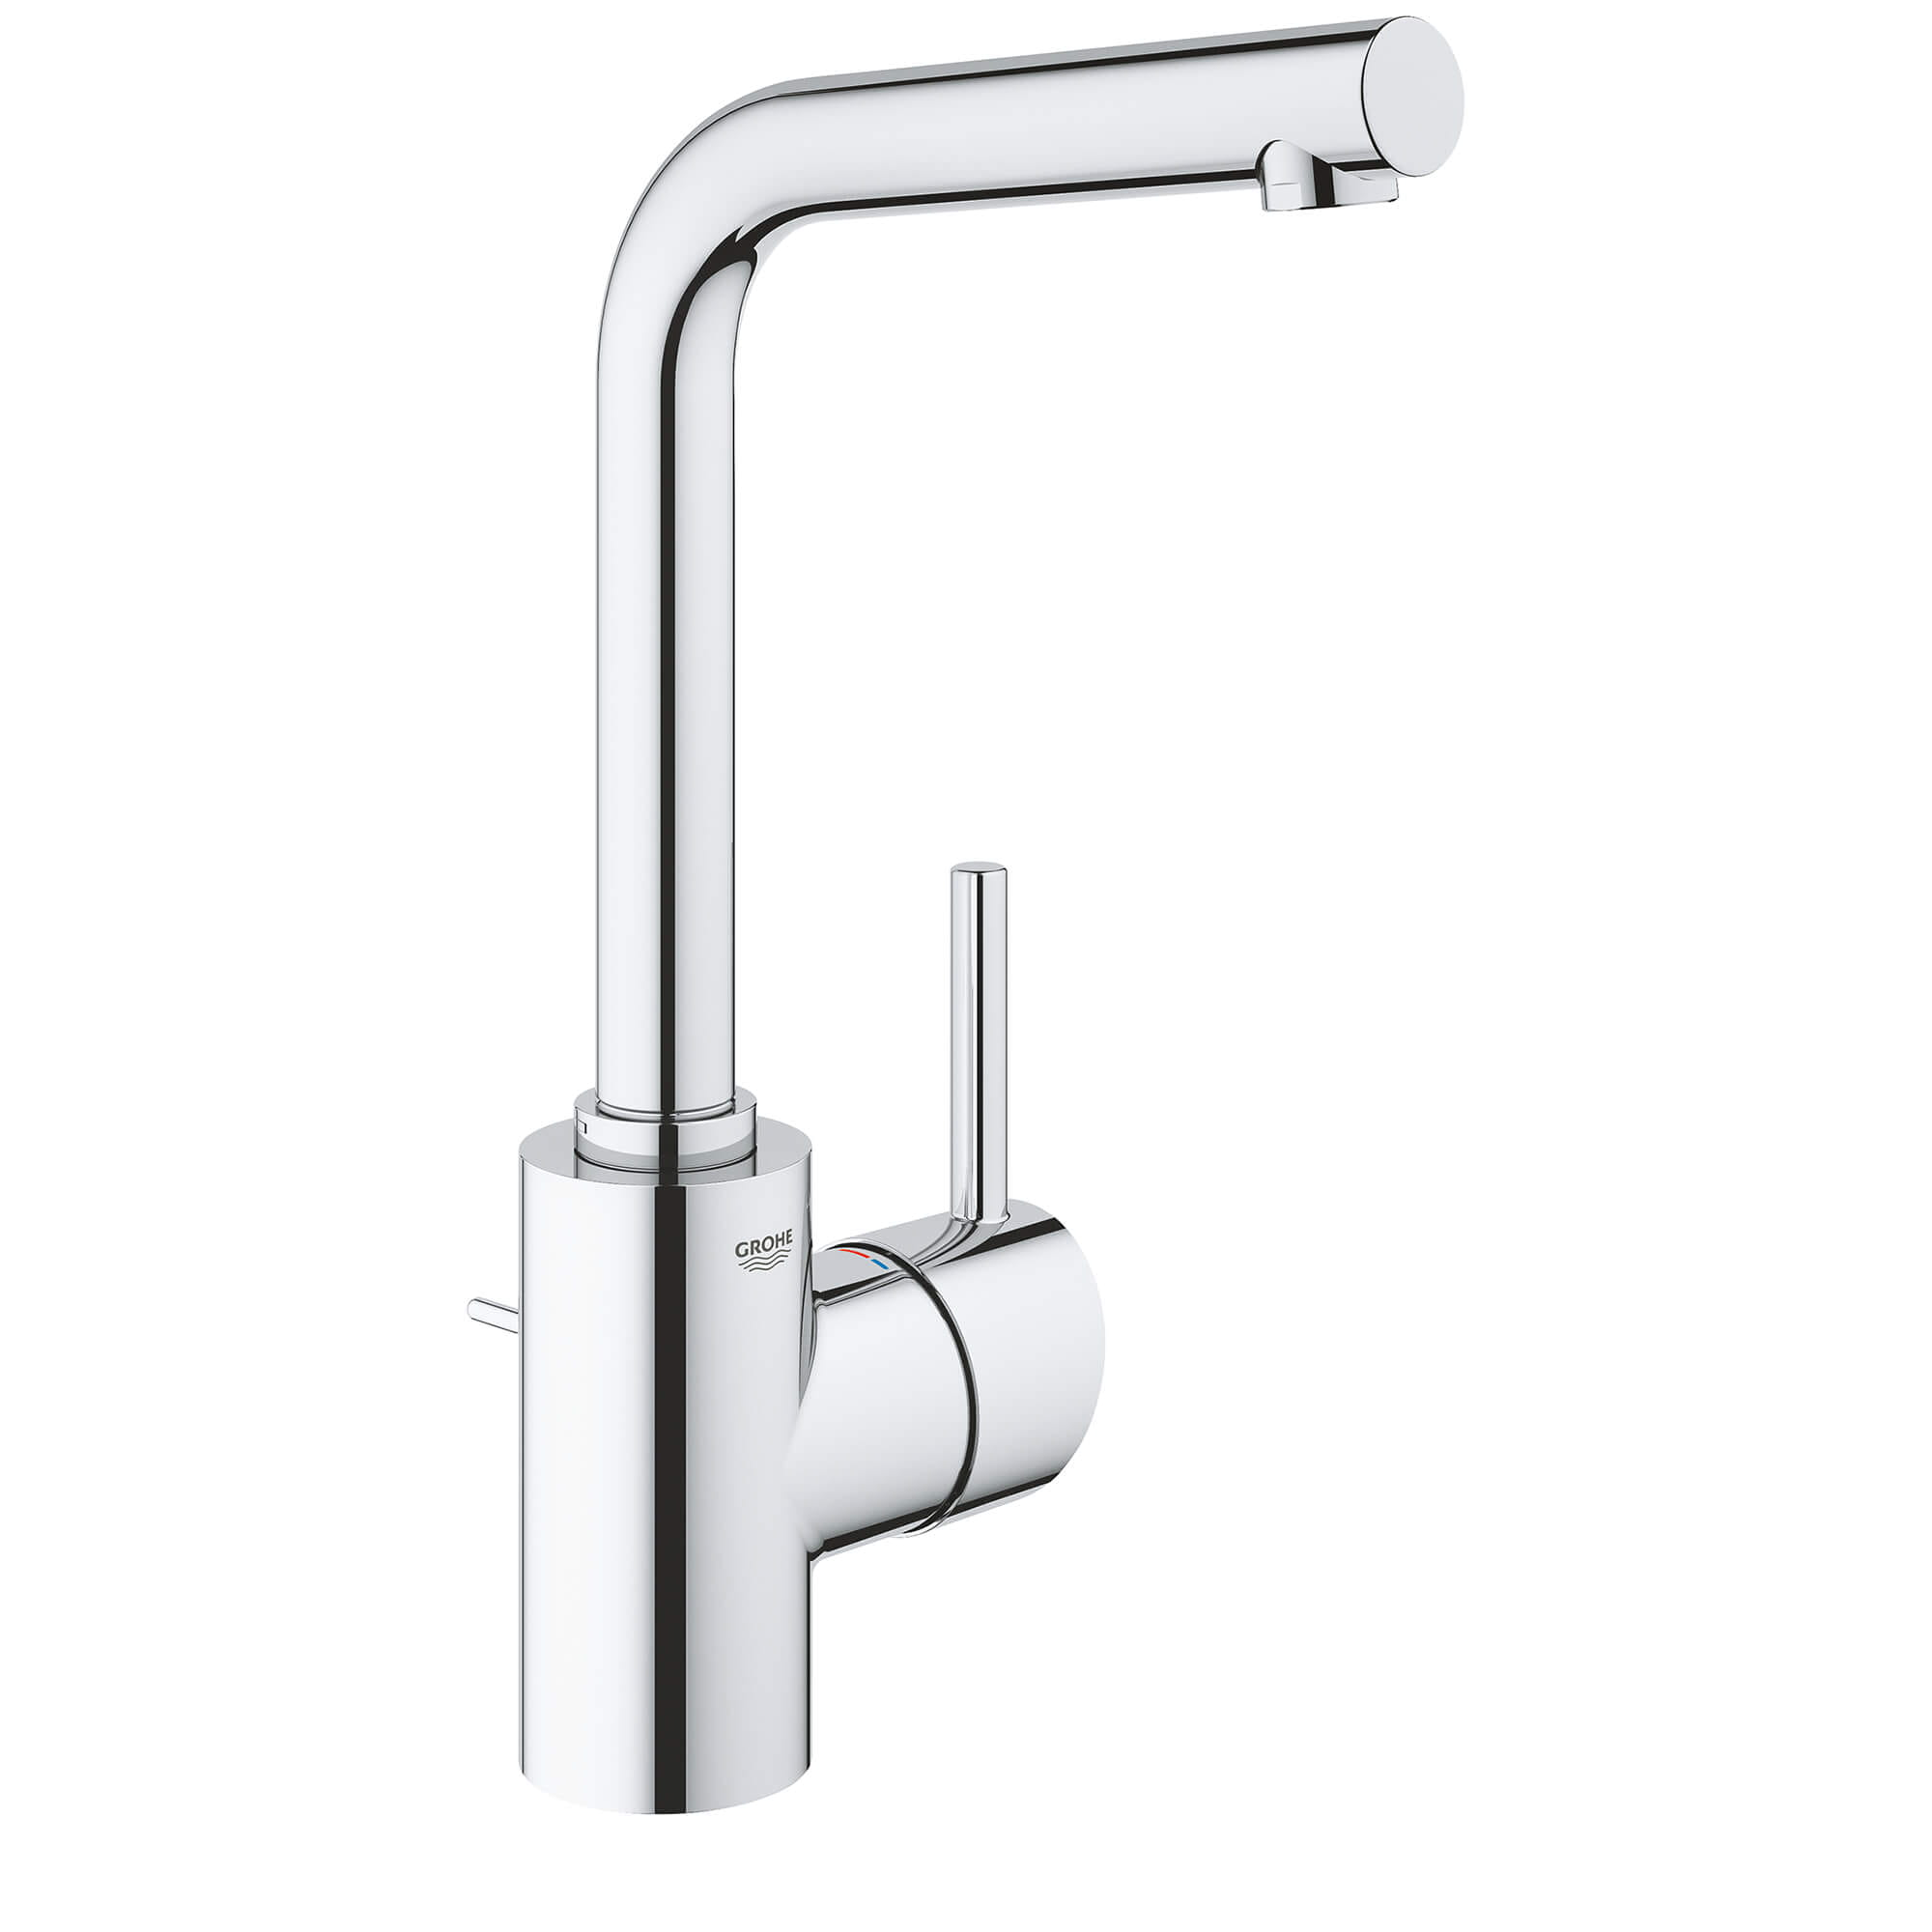 SINGLE HOLE SINGLE-HANDLE L-SIZE BATHROOM FAUCET 1.2 GPM-related